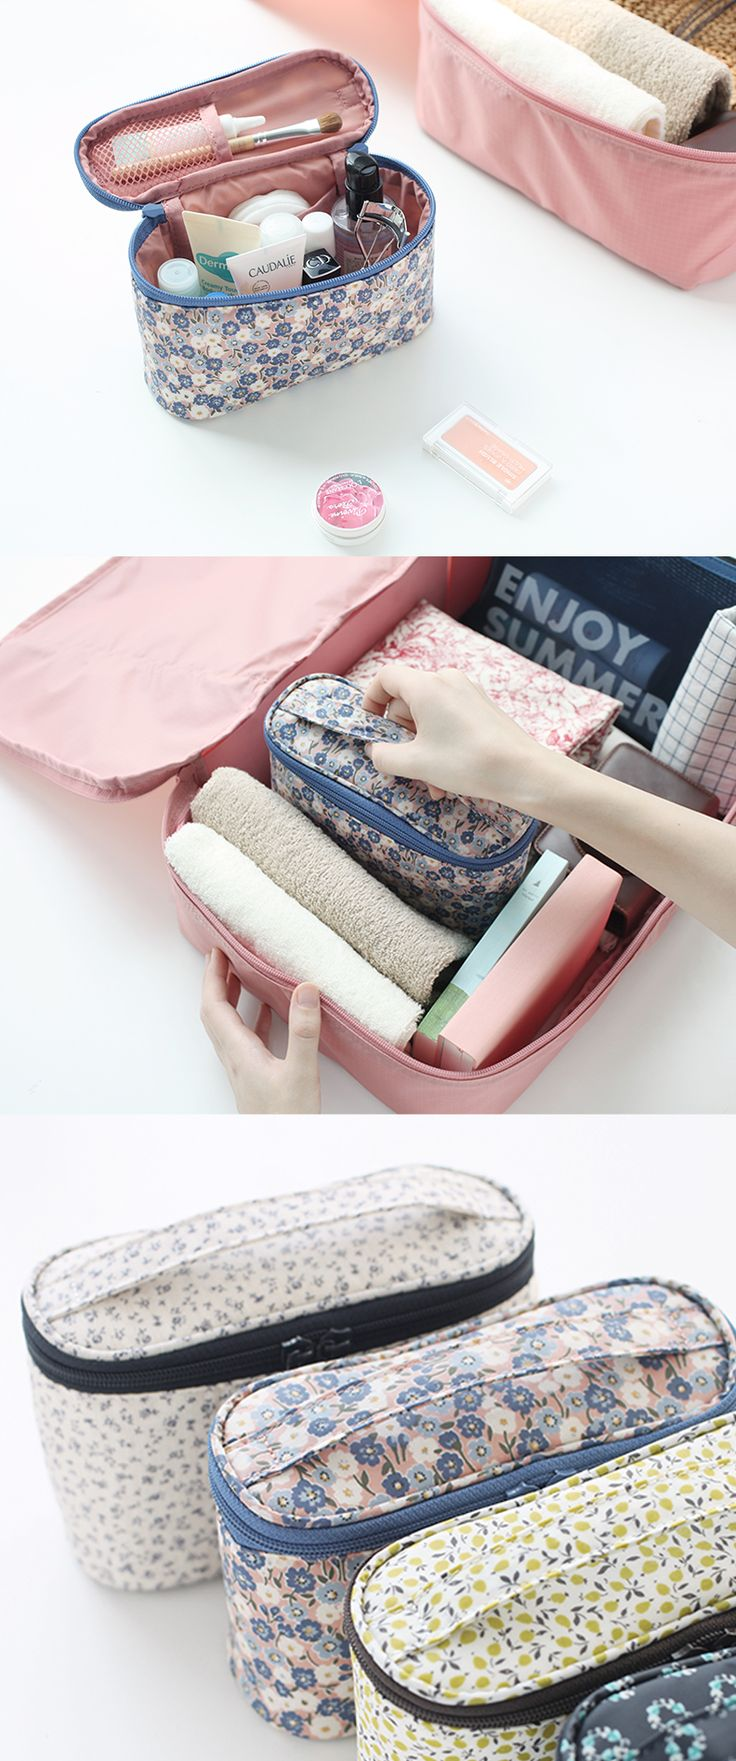 Our most trusted packing hack? Pouches and more pouches! They're the best way to organize your travel essentials! Travel sized toiletries and cosmetics can fit upright in this uniquely shaped Warm Breeze Cosmetic Pouch. It features 1 main zippered compartment that's lightly padded. Inside, you'll find 2 mesh pockets perfect for makeup, brushes, lip balm, and other small items. The exterior has a water resistant coating for extra protection! This pouch is both practical and cute, so check it…